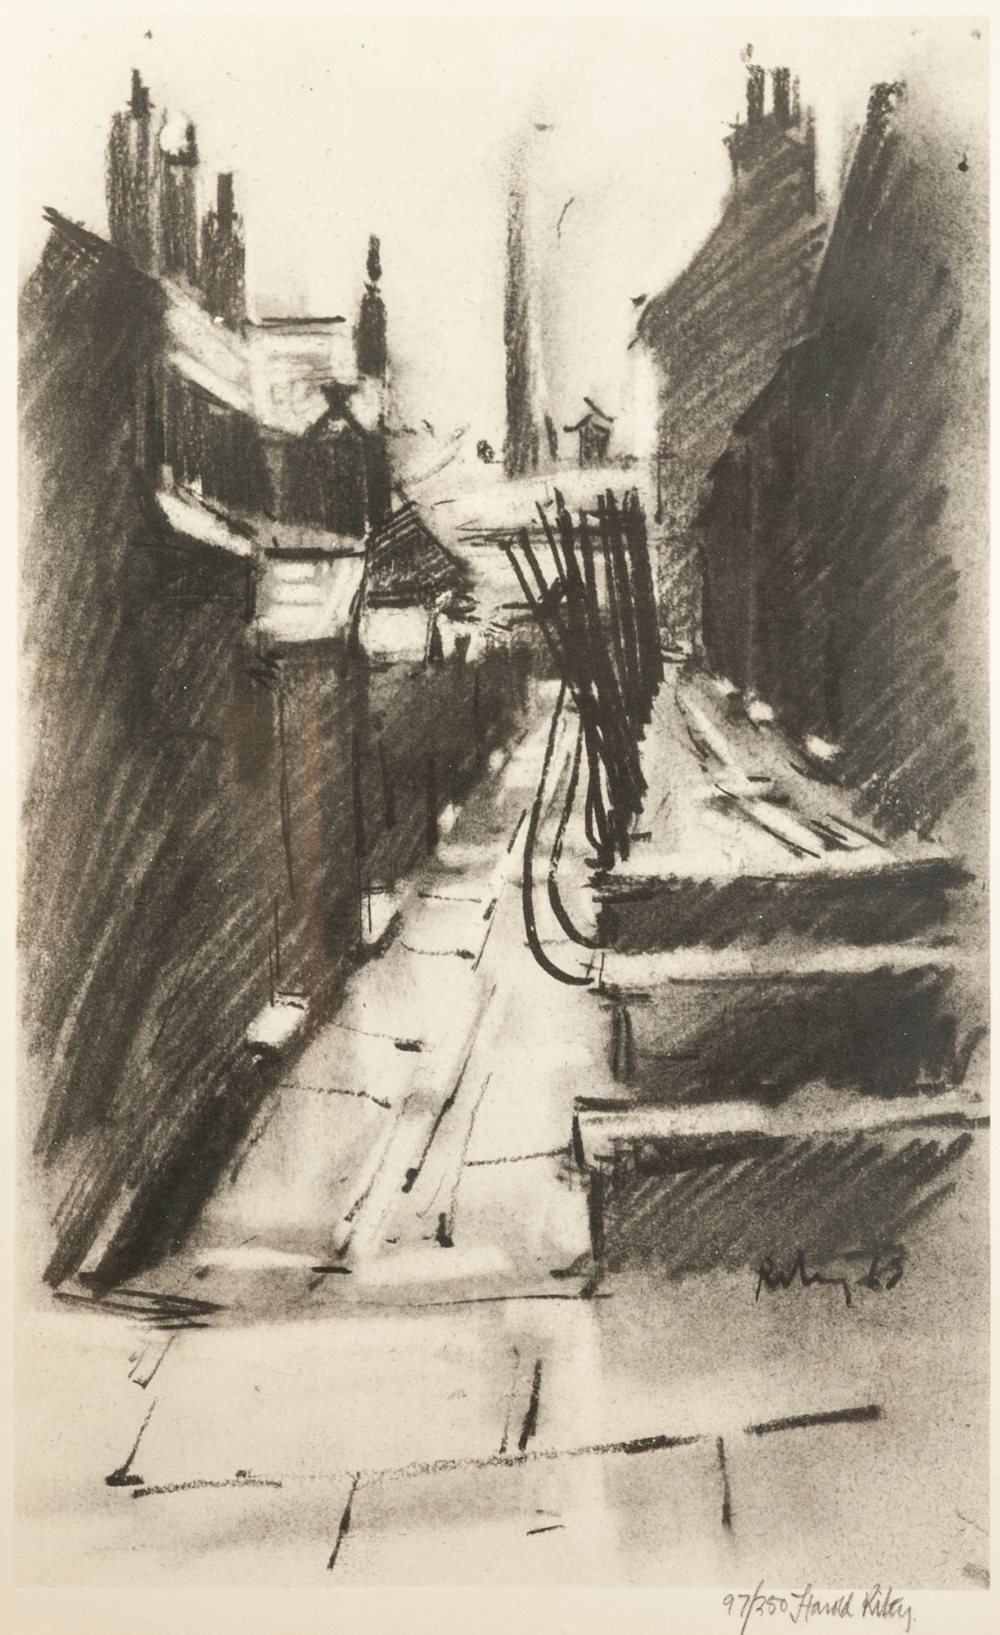 Lot 128 - •HAROLD RILEY (1934) ARTIST SIGNED LIMITED EDITION PRINT OF A CHARCOAL DRAWING 'Back Alley' Signed